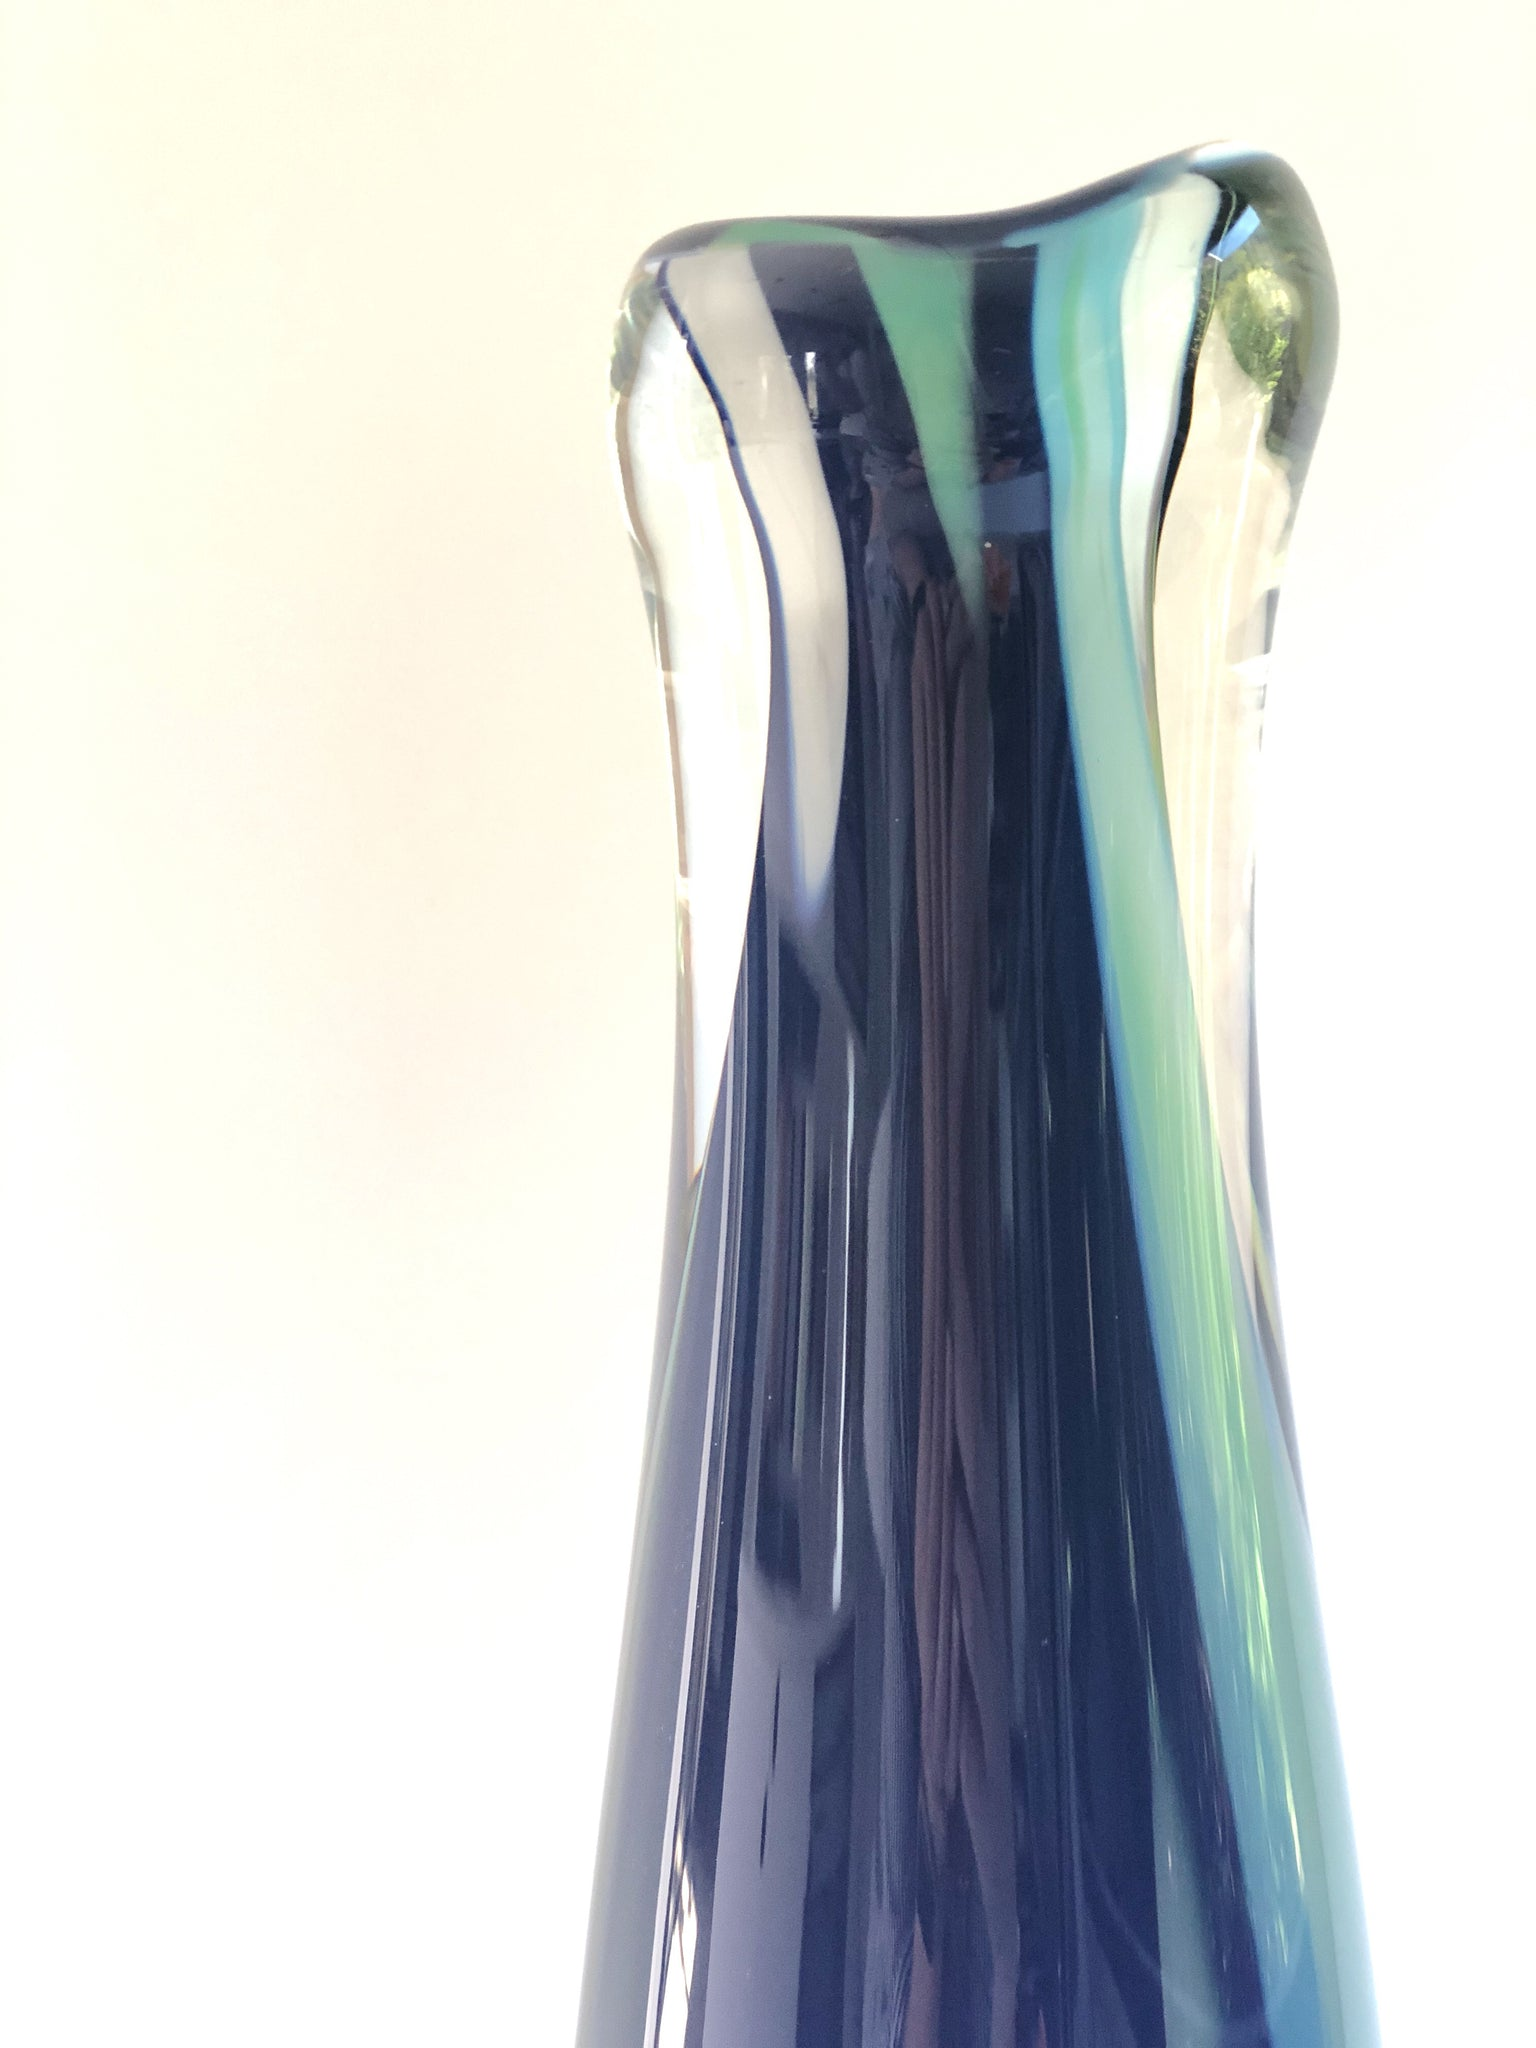 Tall vessel blue marble mix